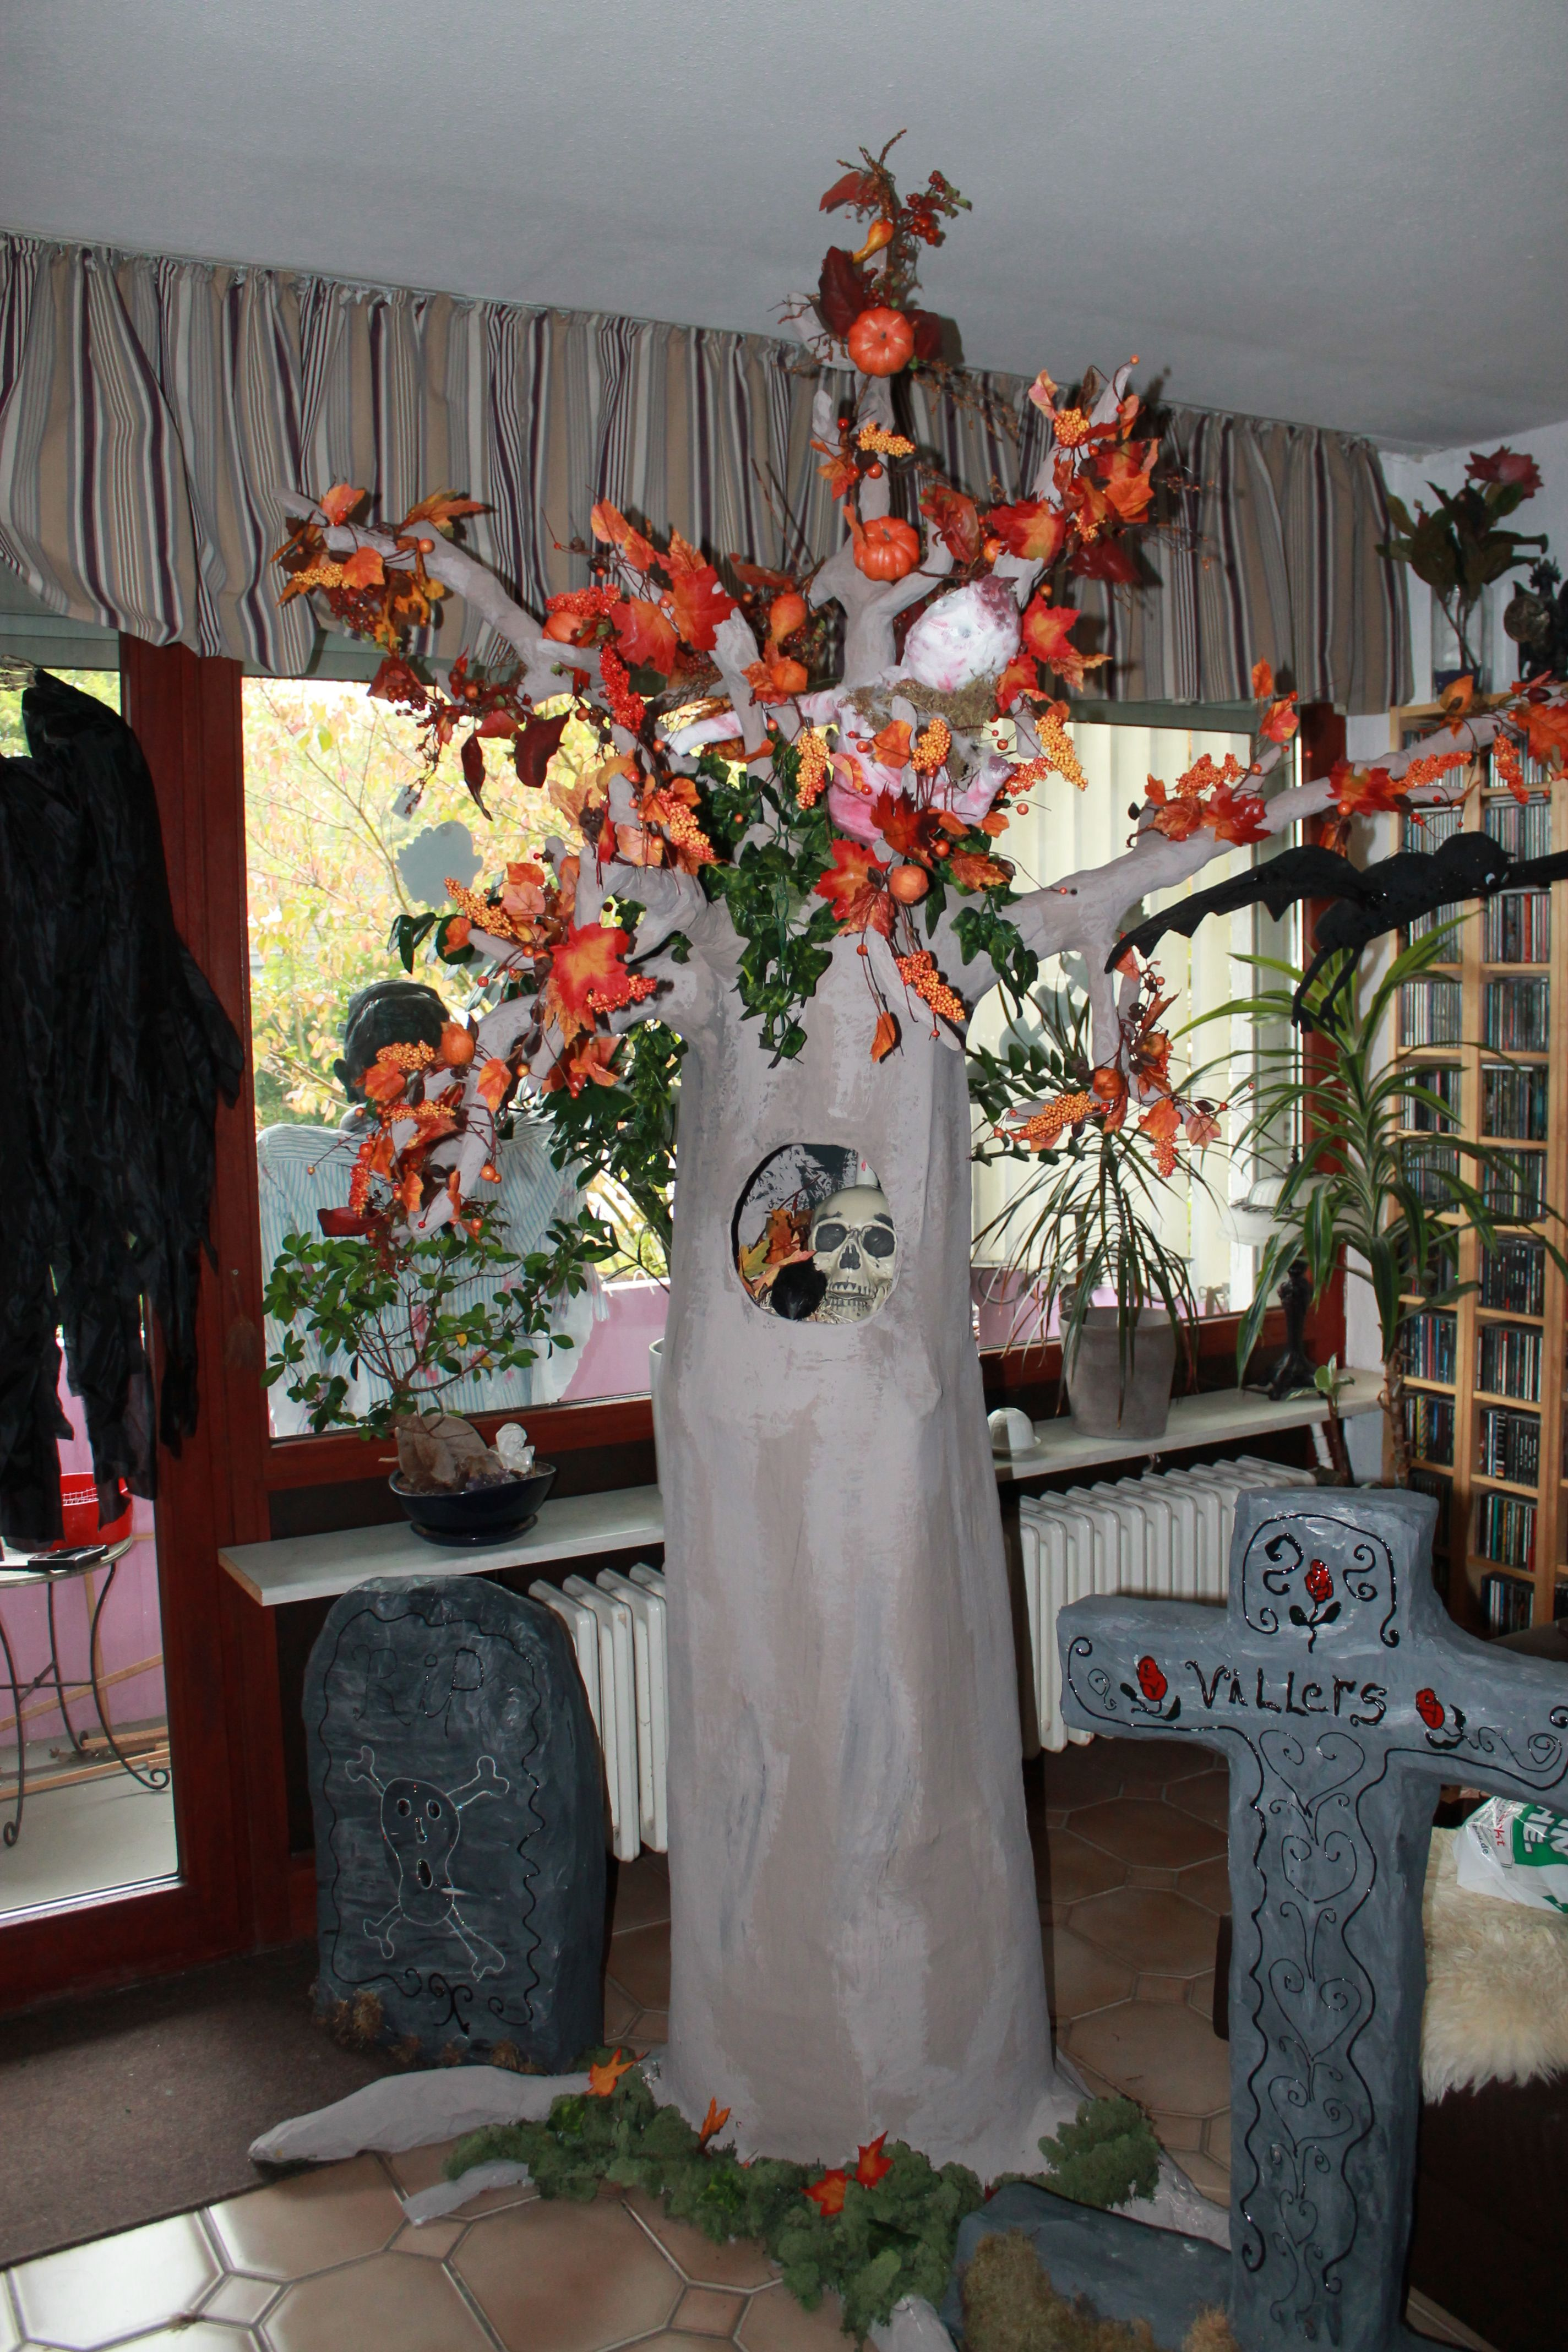 My tree when done.. I added decoration for Halloween. I added a mummy in the tree and some fall leafs..